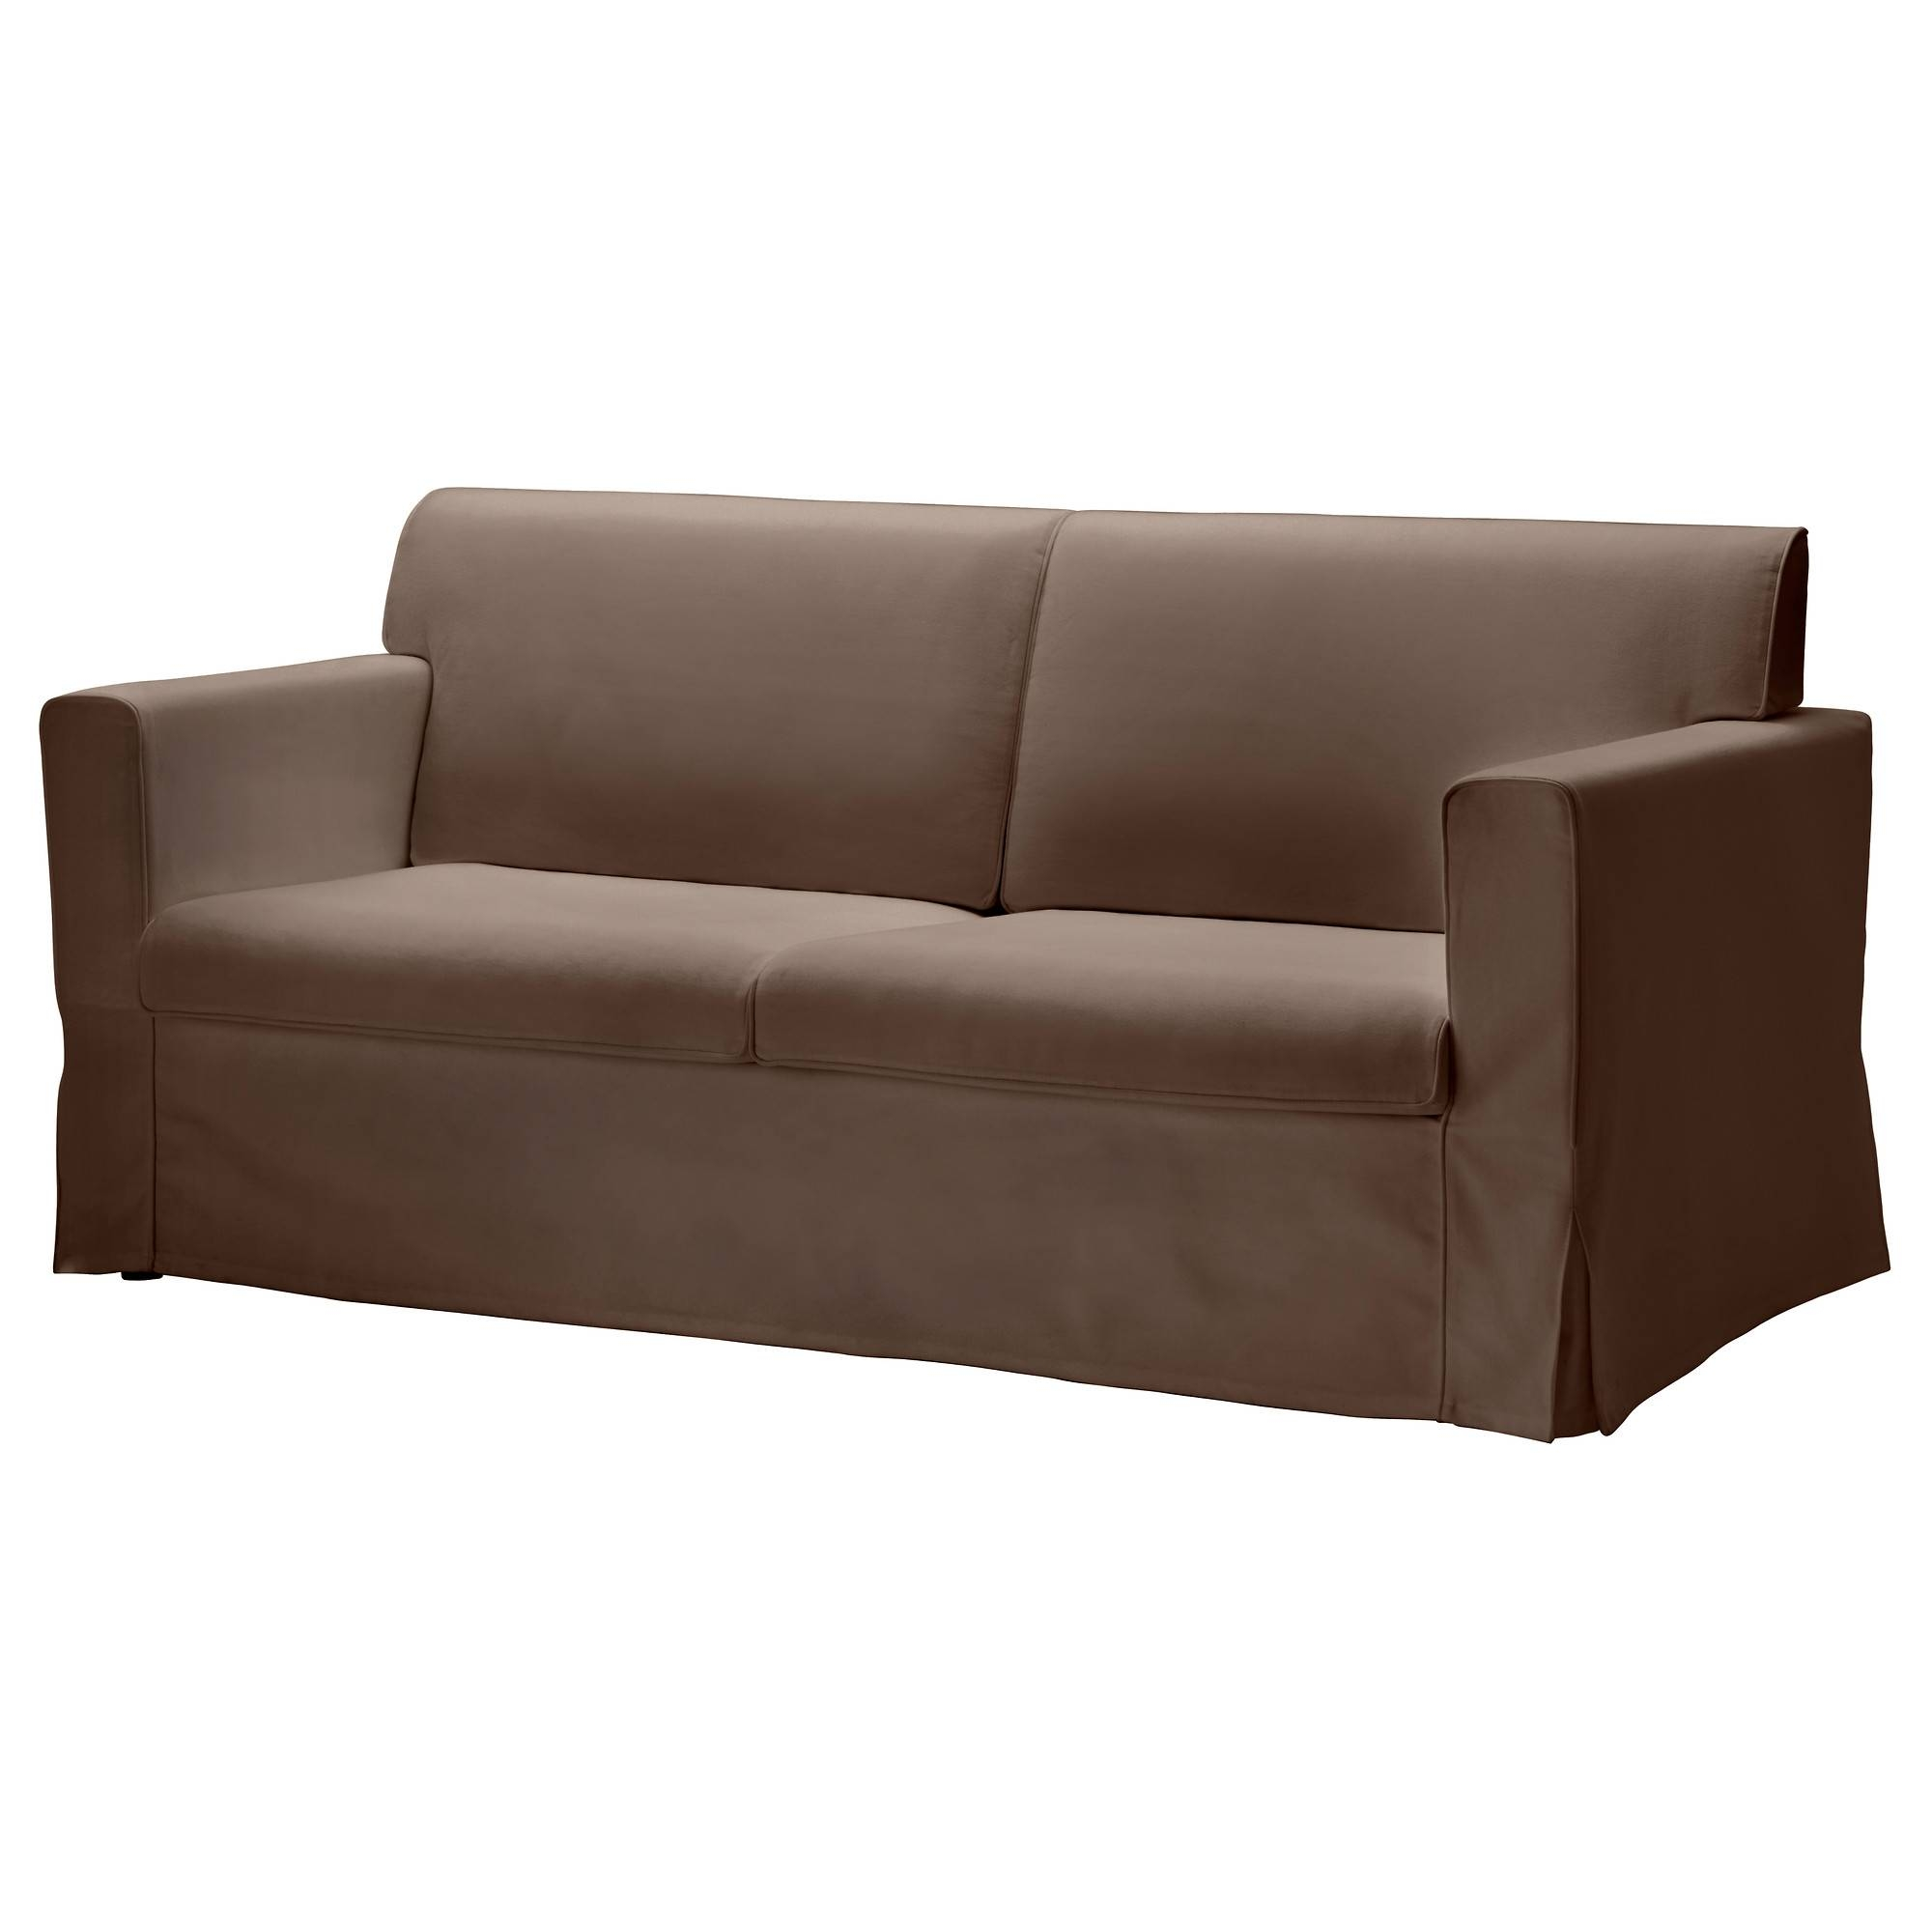 Good Simple Sofa 13 For Sofas And Couches Ideas With Simple Sofa with regard to Simple Sofas (Image 5 of 15)